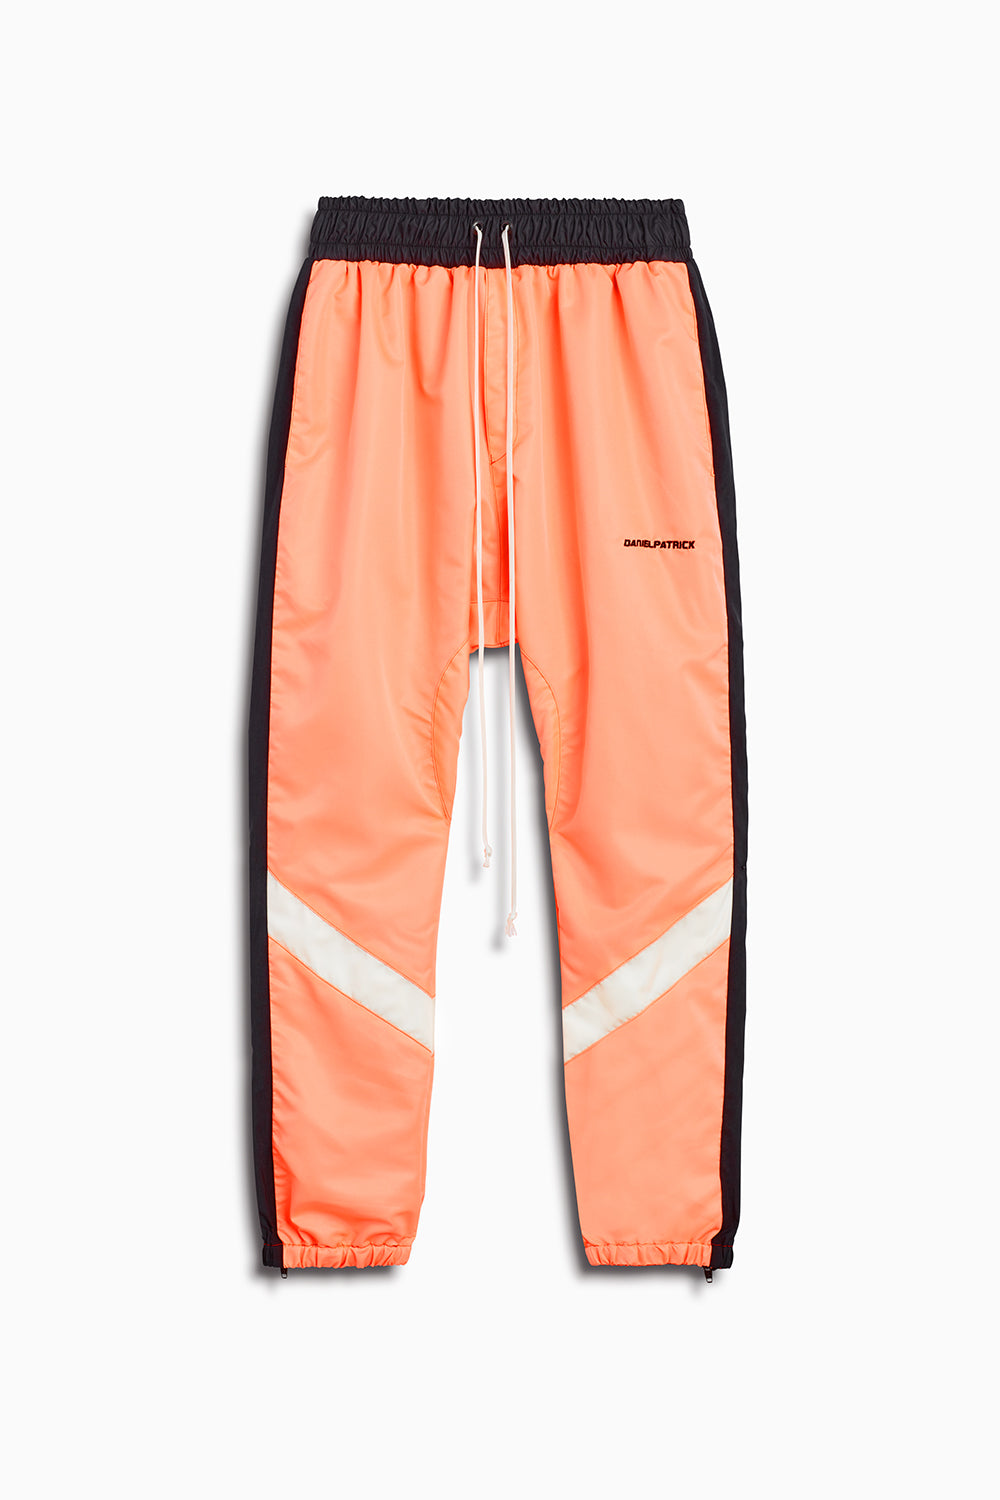 2019 parachute track pant in coral/black/ivory by daniel patrick